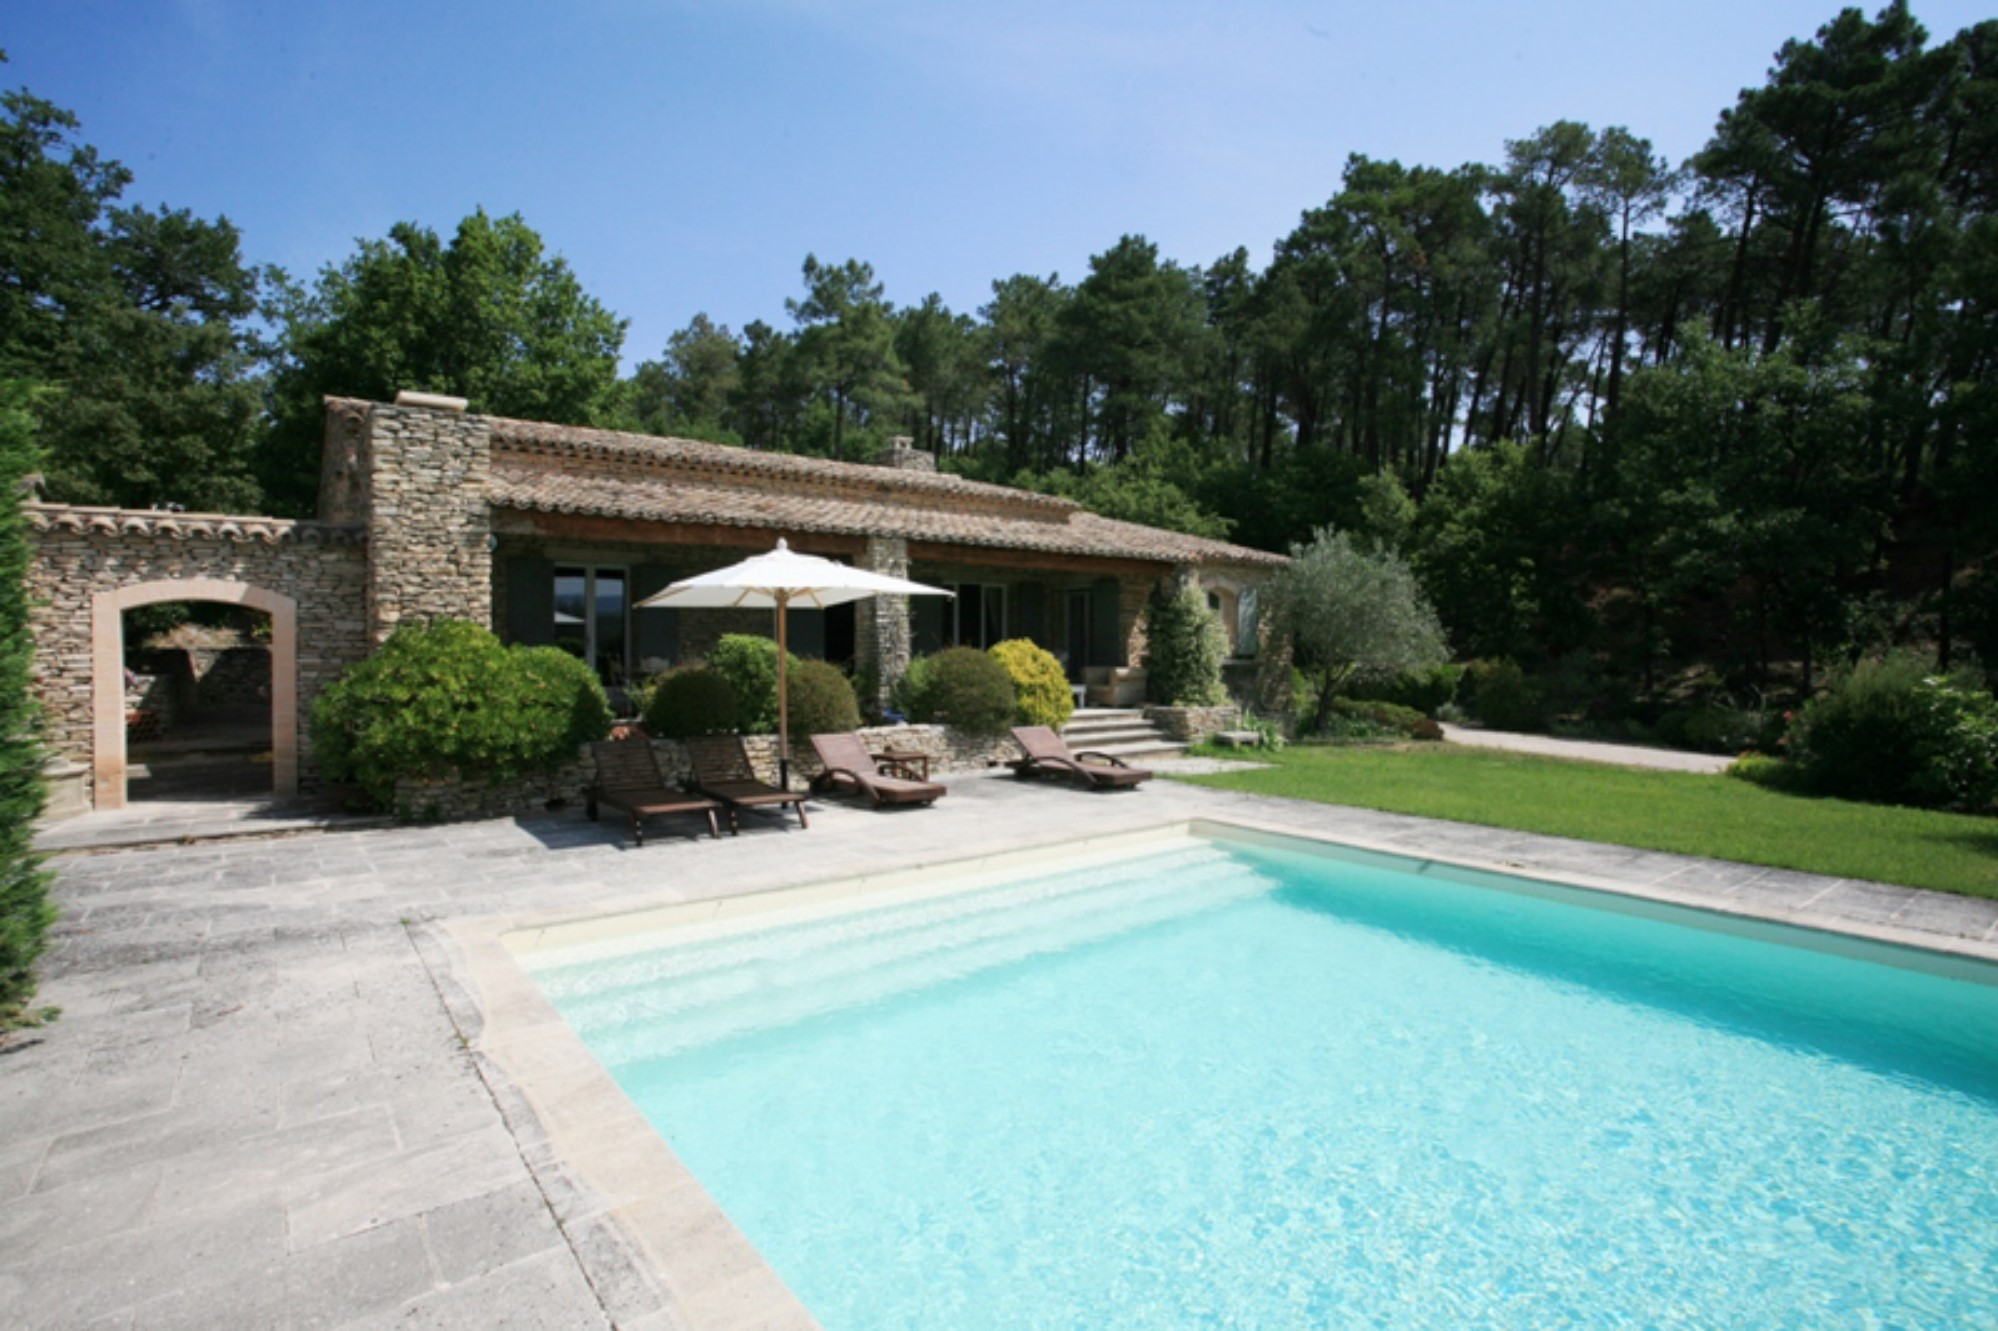 traditional stone house with pool and tennis court for sale near